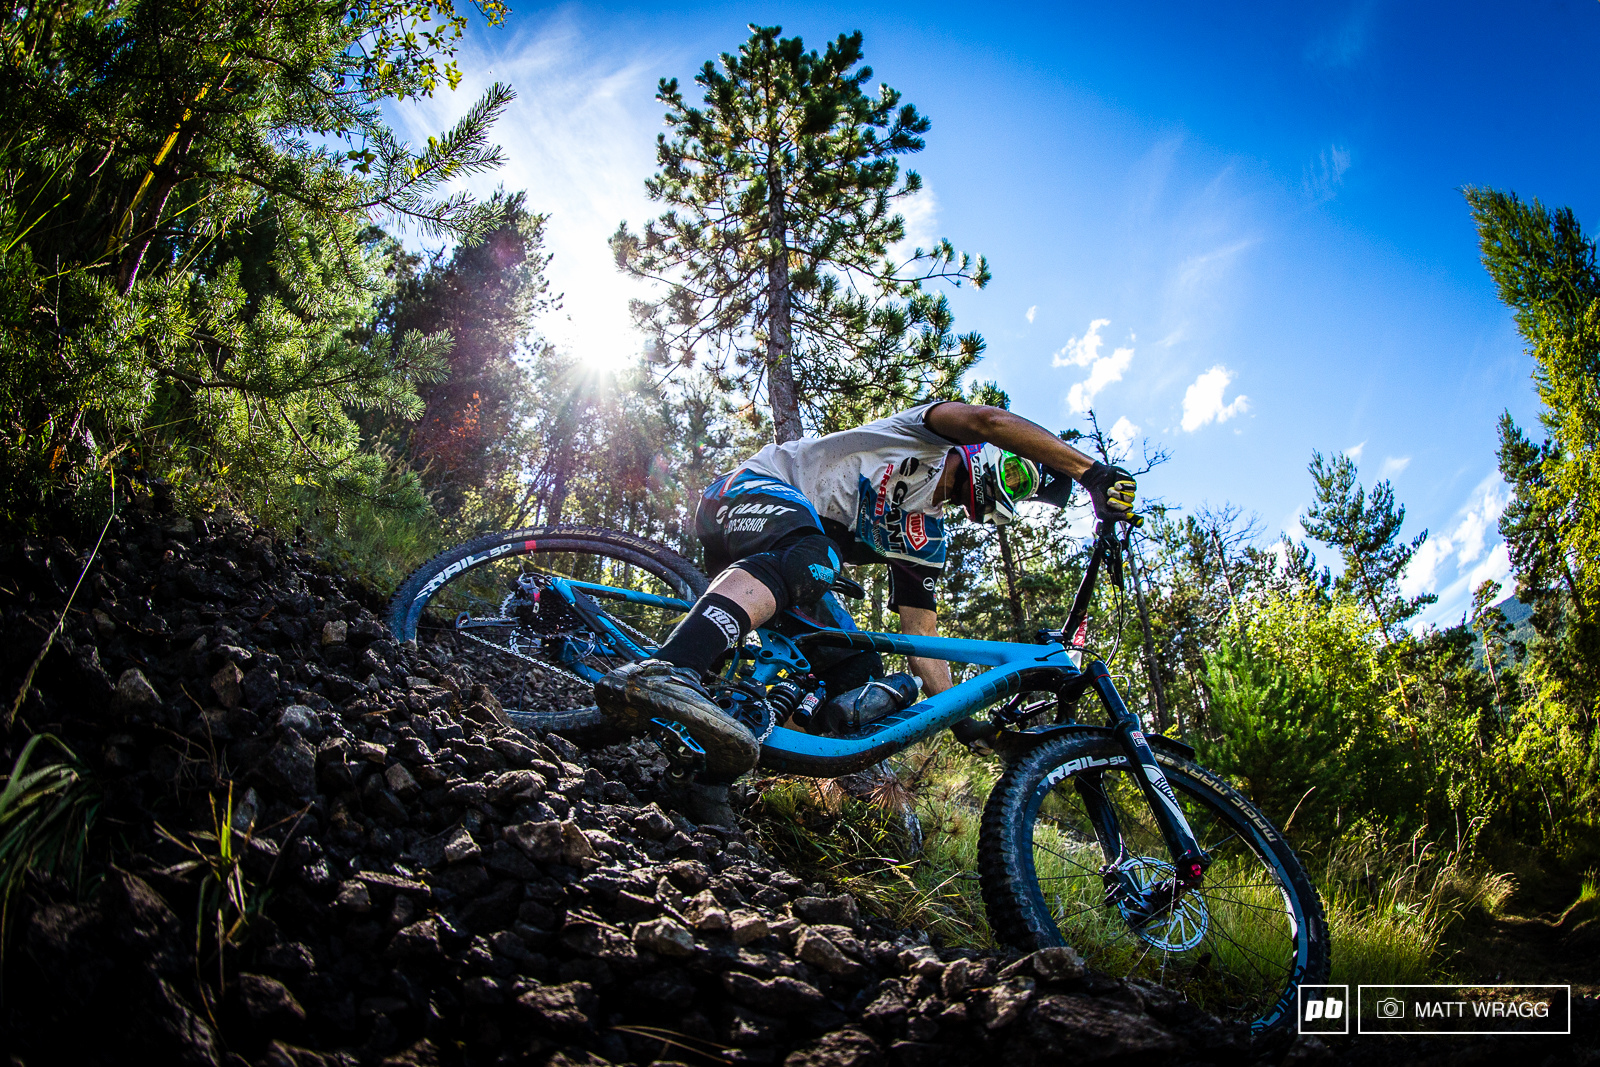 Yoann Barelli is undoubtedly one of the fastest riders not to have yet won a round. He was born in this area and grew up riding this sort of terrain so it would certainly be sweet satisfaction for the Whistler-transplant if he could break his duck here...